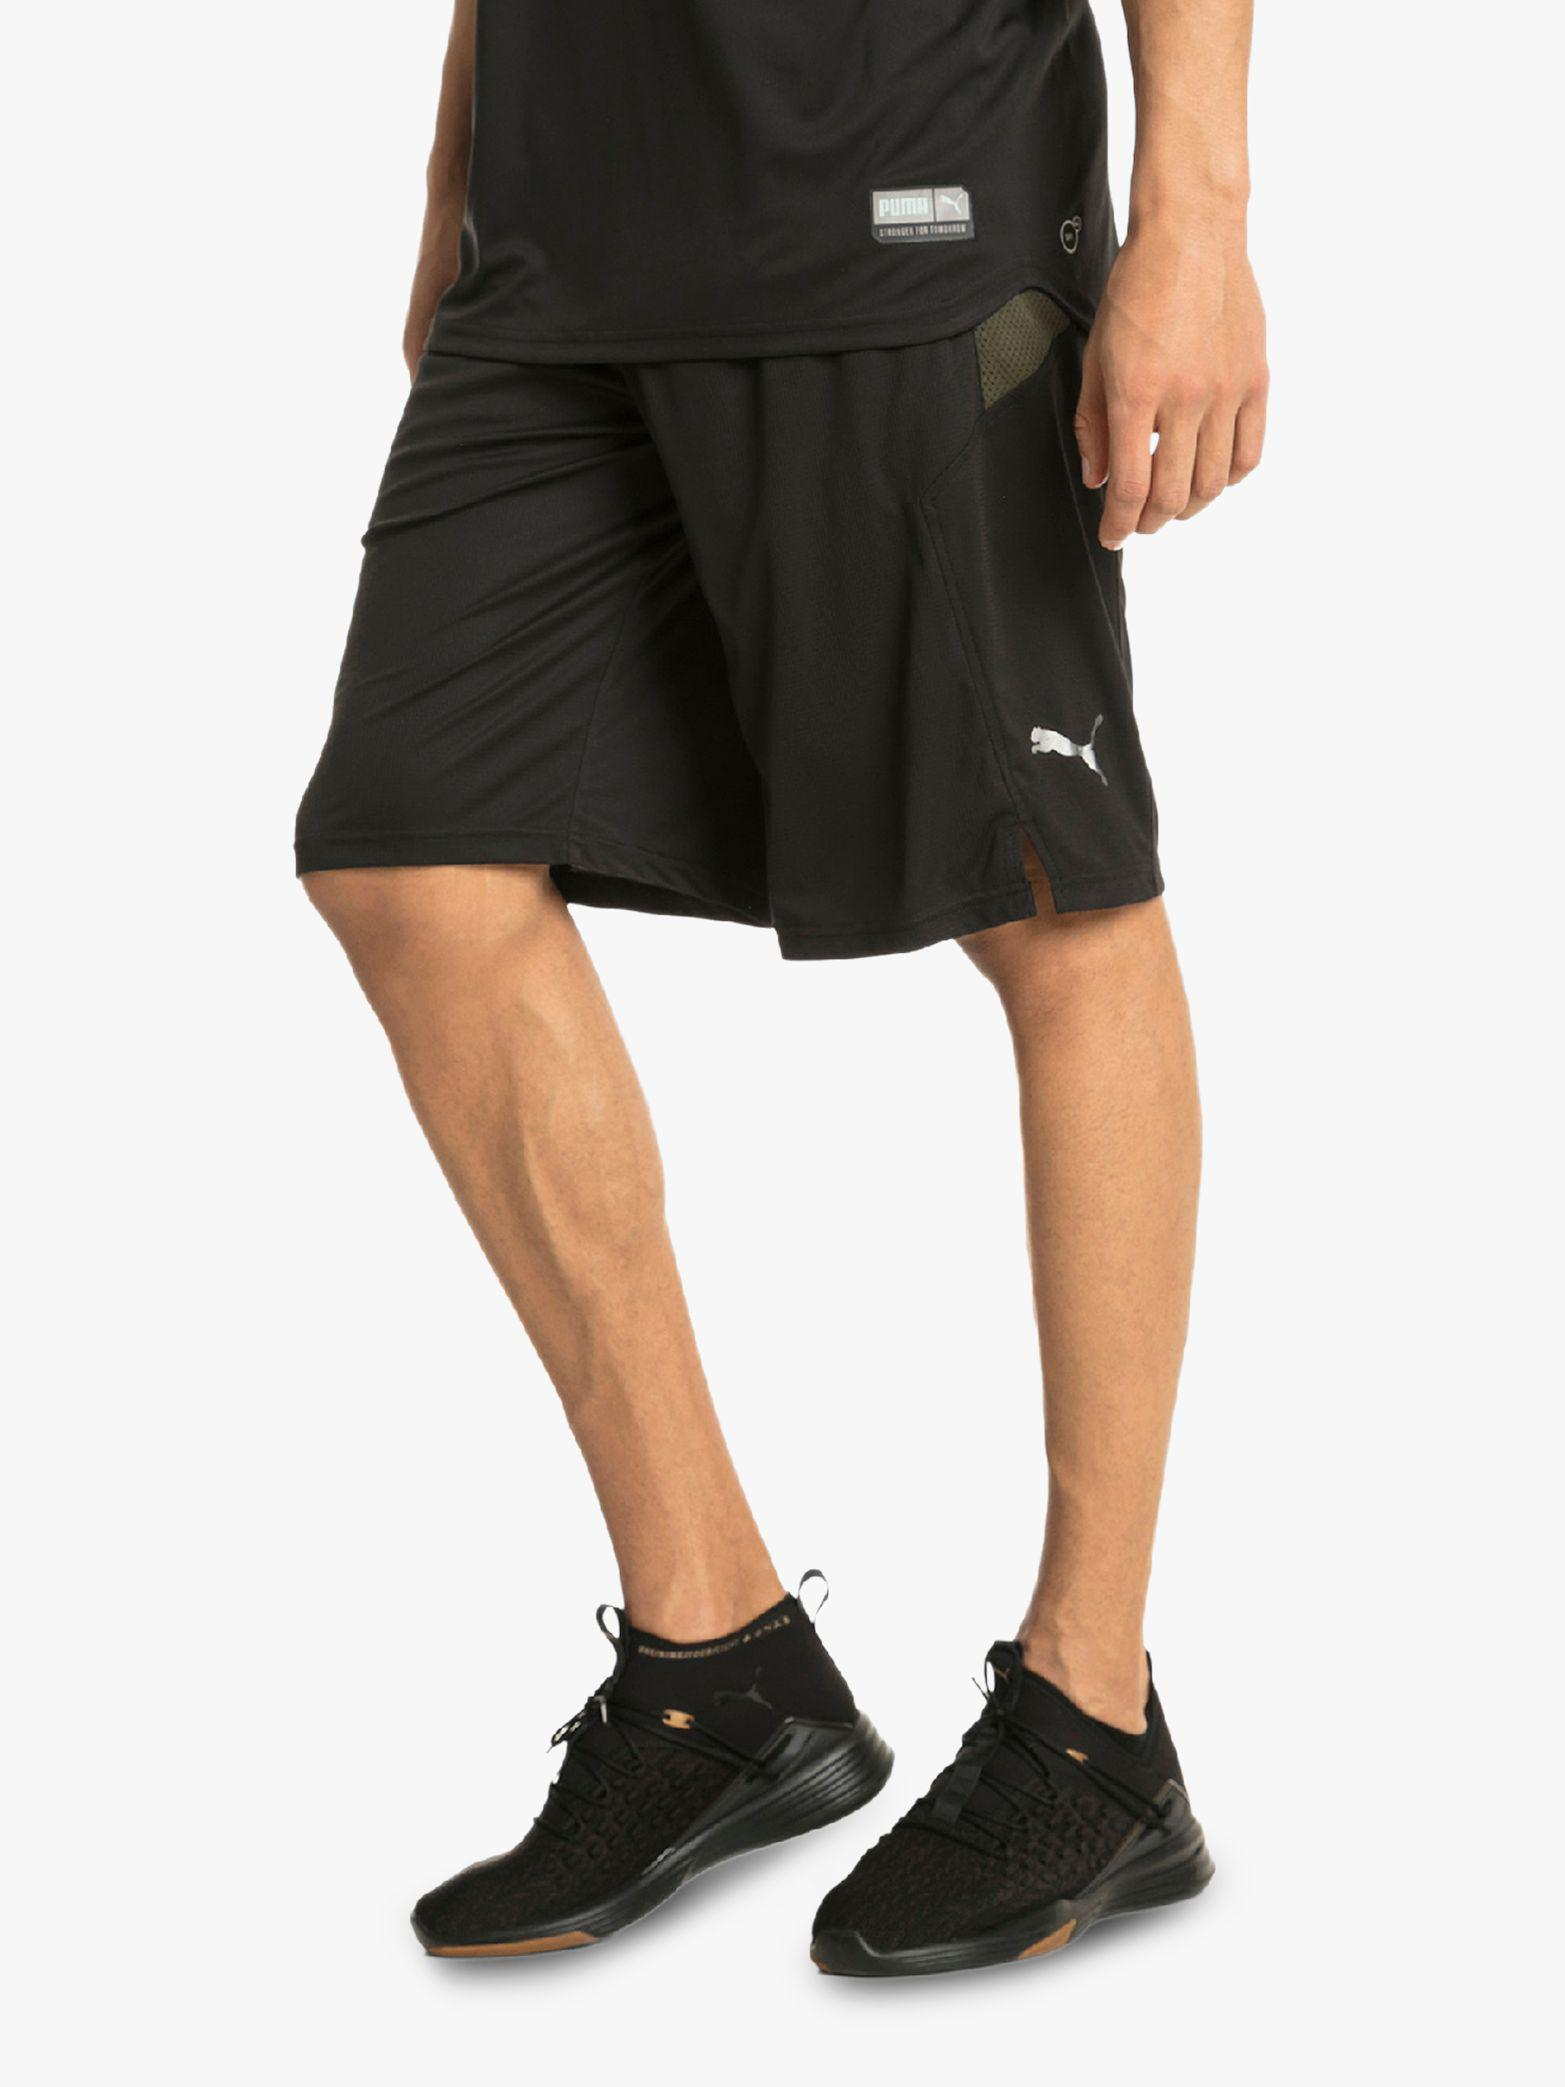 size 40 e9907 1baa3 PUMA. Mens Black Energy Knit Mesh Running Shorts. £30 From John Lewis ...